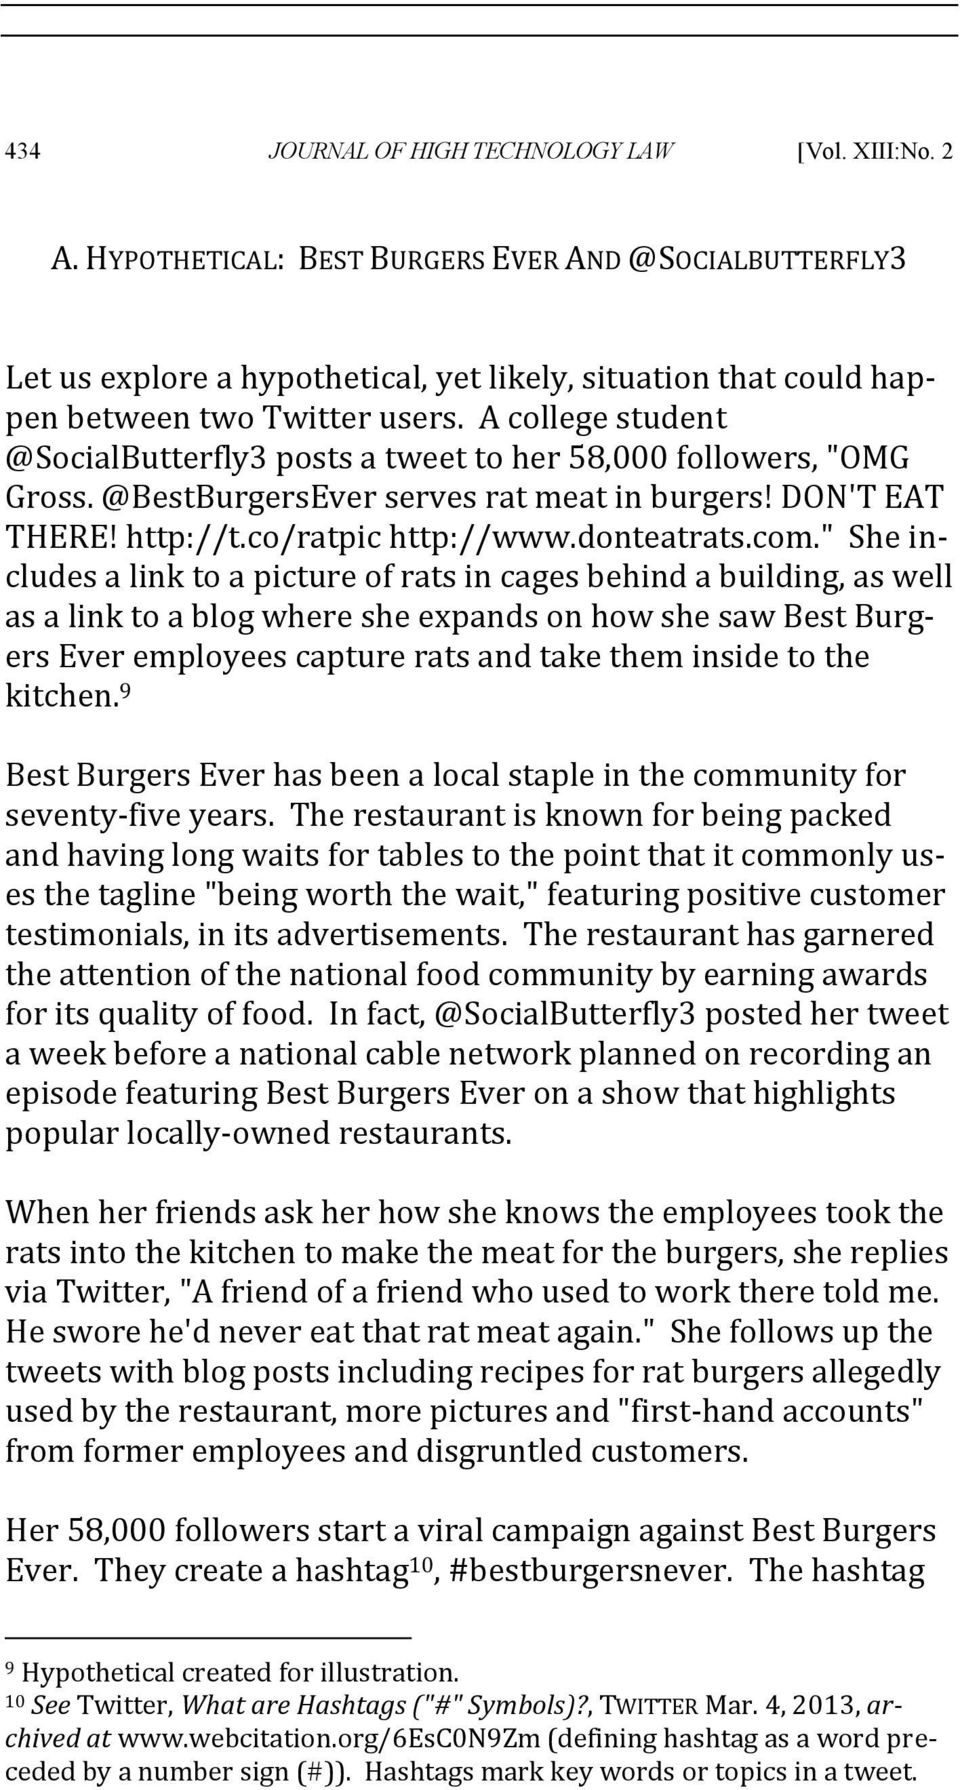 "A college student @SocialButterfly3 posts a tweet to her 58,000 followers, ""OMG Gross. @BestBurgersEver serves rat meat in burgers! DON'T EAT THERE! http://t.co/ratpic http://www.donteatrats.com."